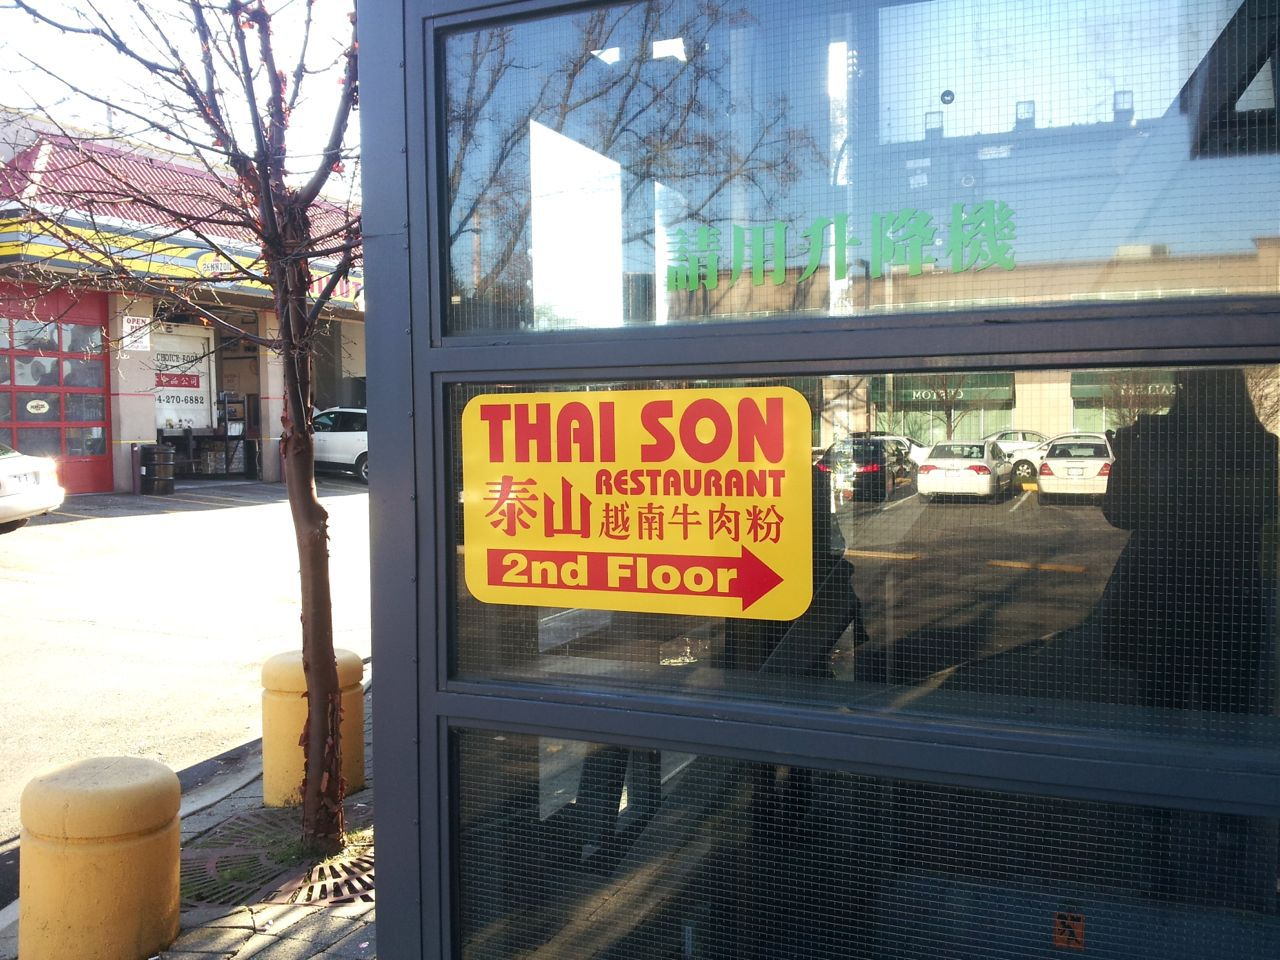 Thai Son sign